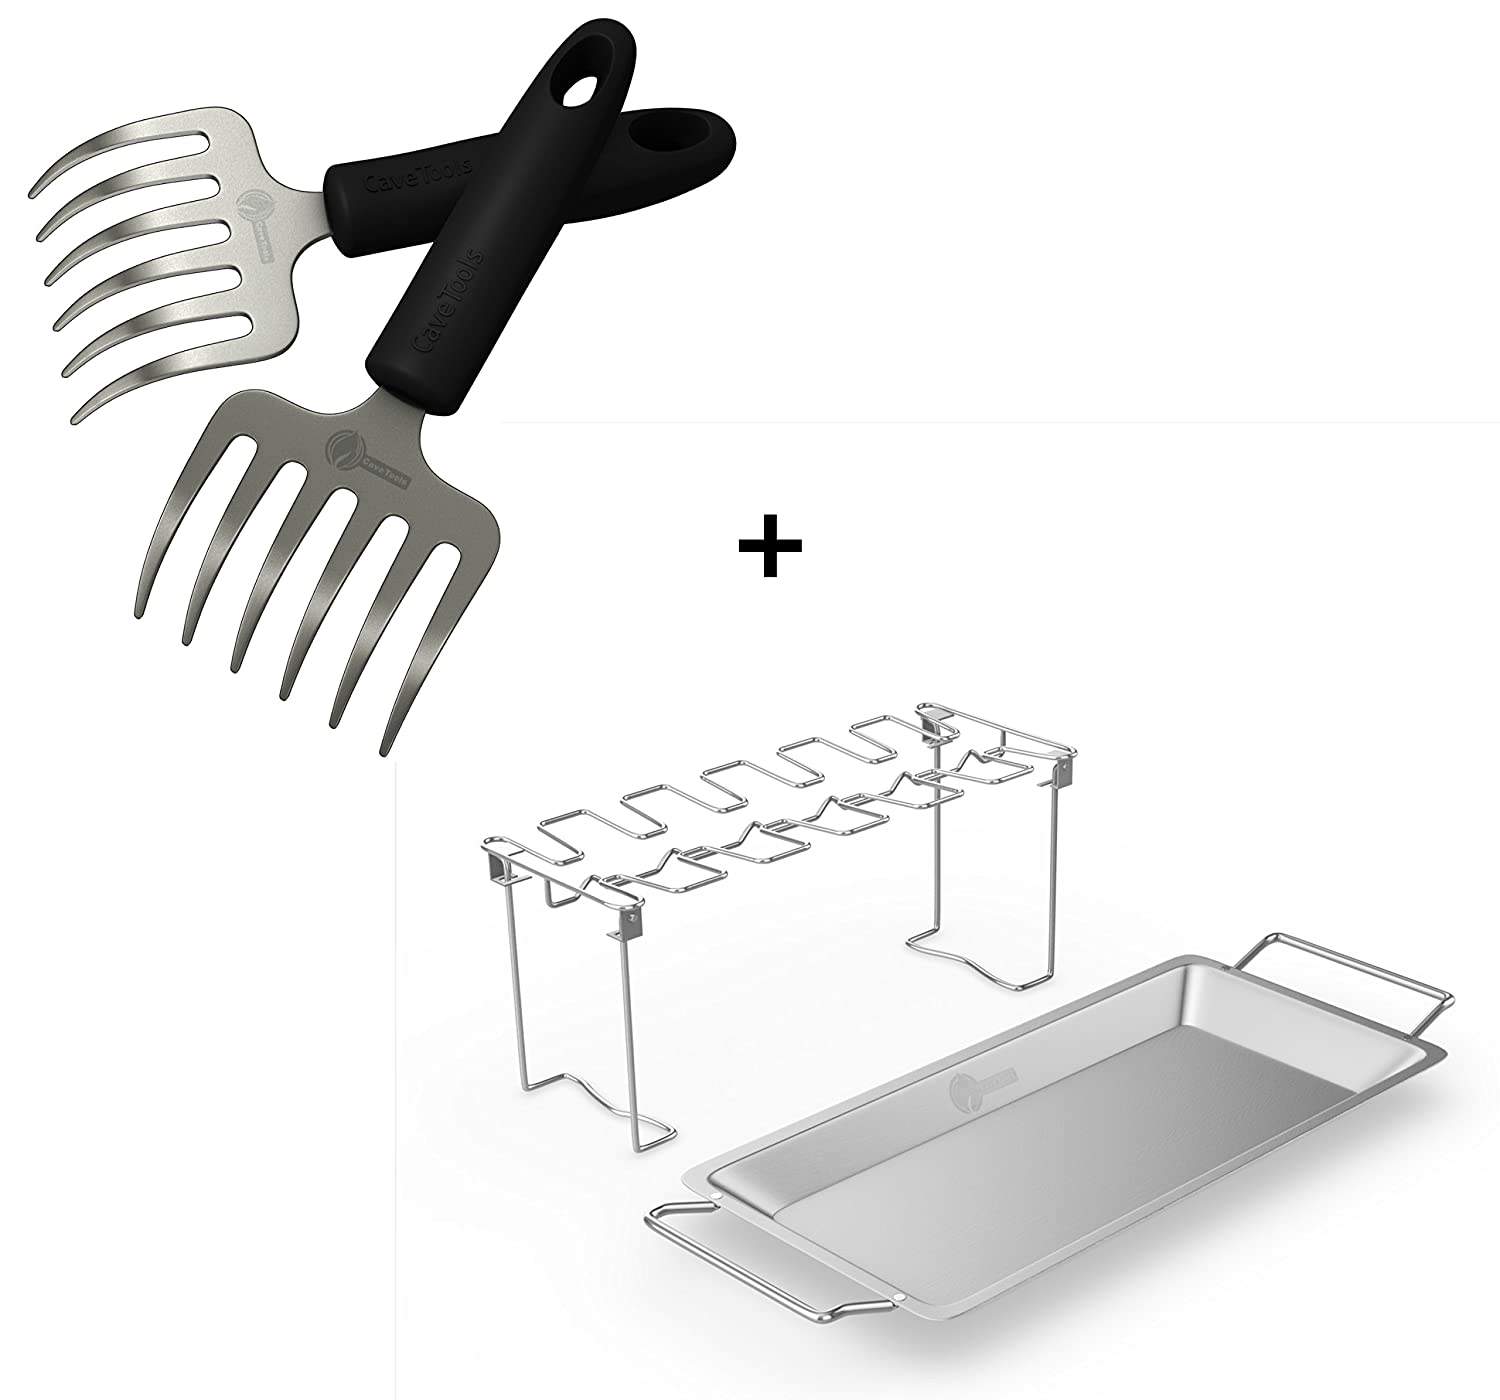 Pulled Pork Shredder Rakes Chicken Wing Leg Rack For Grill Smoker or Oven – Stainless Steel Roaster Stand Drip Pan For Cooking Vegetables In BBQ Juices – Dishwasher Safe Barbecue Accessories